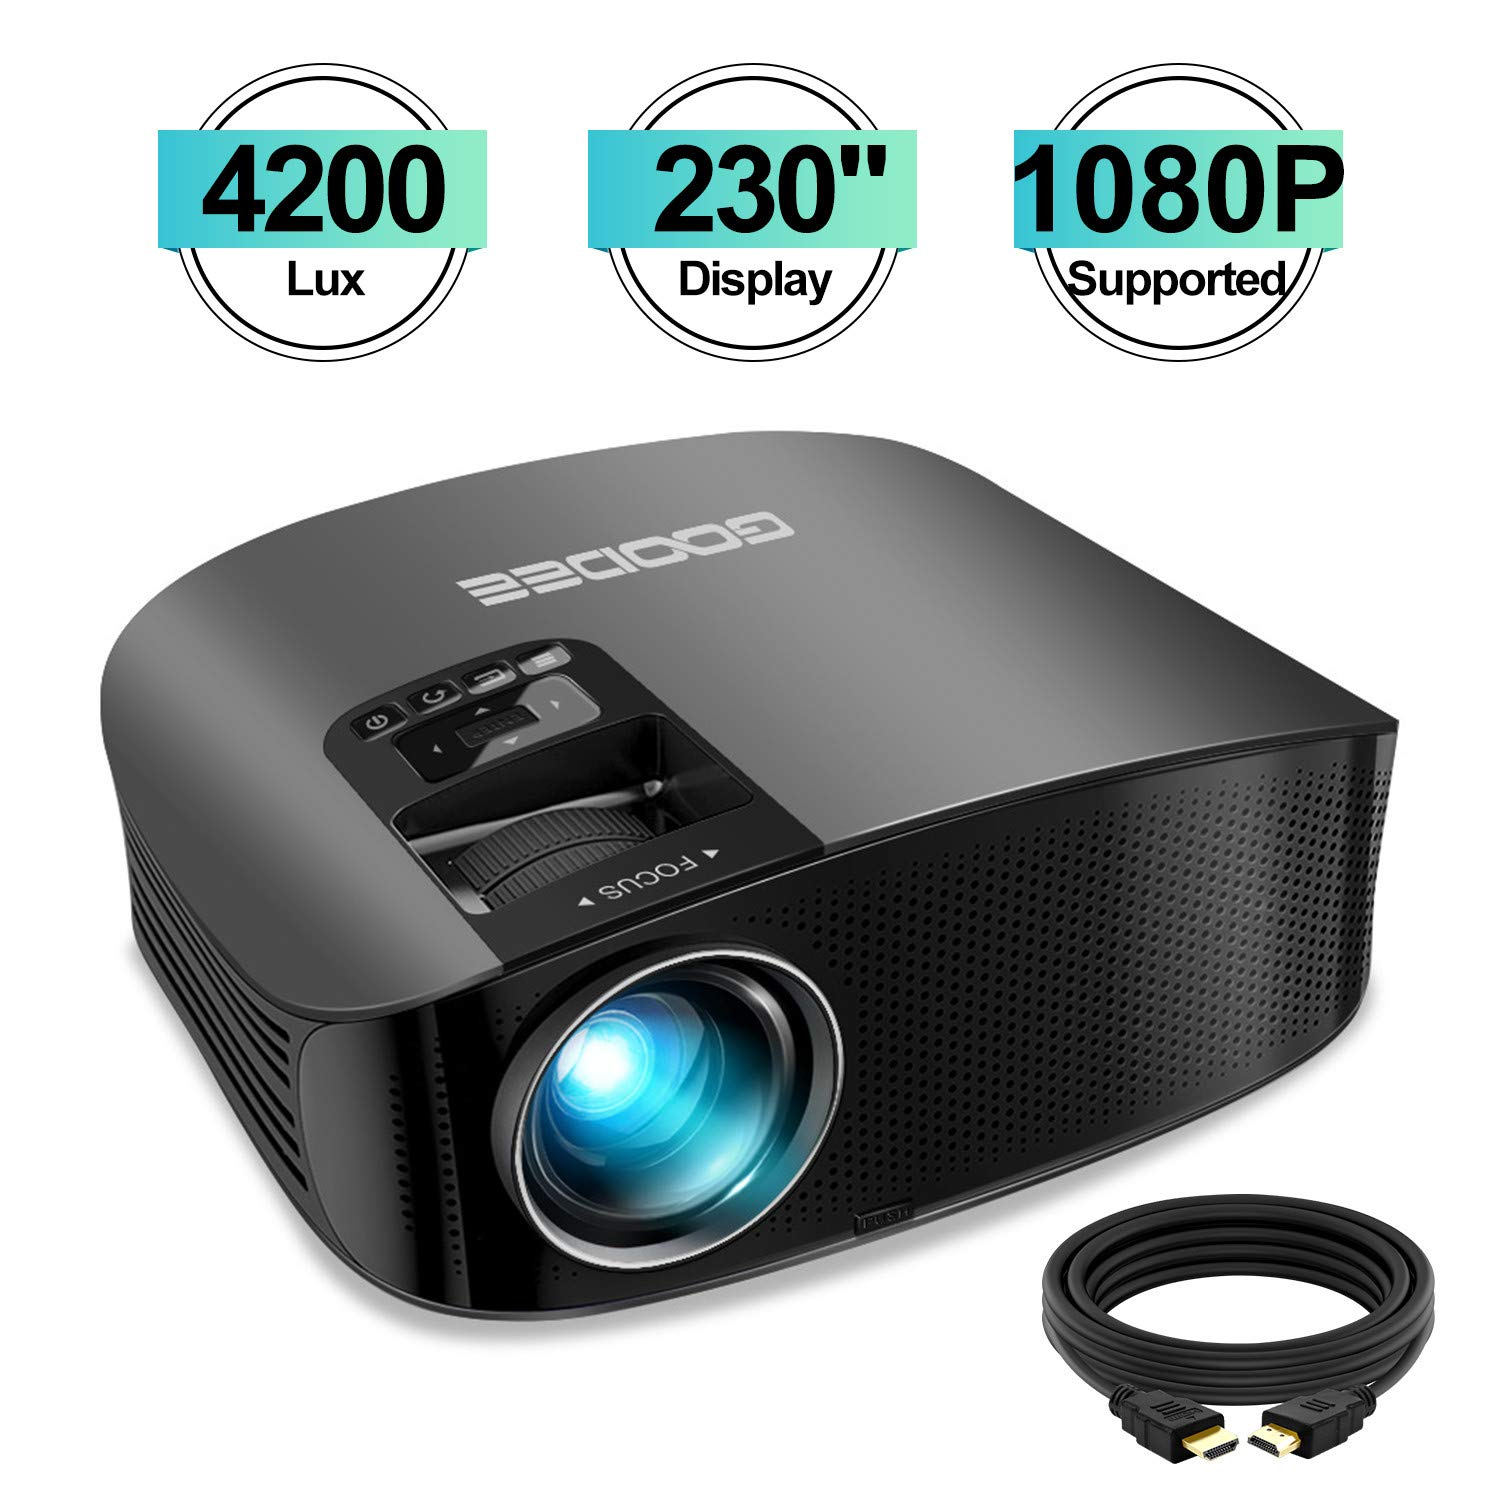 Projector, GooDee Upgrade HD Video Projector 4200L Outdoor Movie Projector, 230'' Home Theater Projector Support 1080P, Compatible with Fire TV Stick, PS4, HDMI, VGA, AV and USB by GooDee